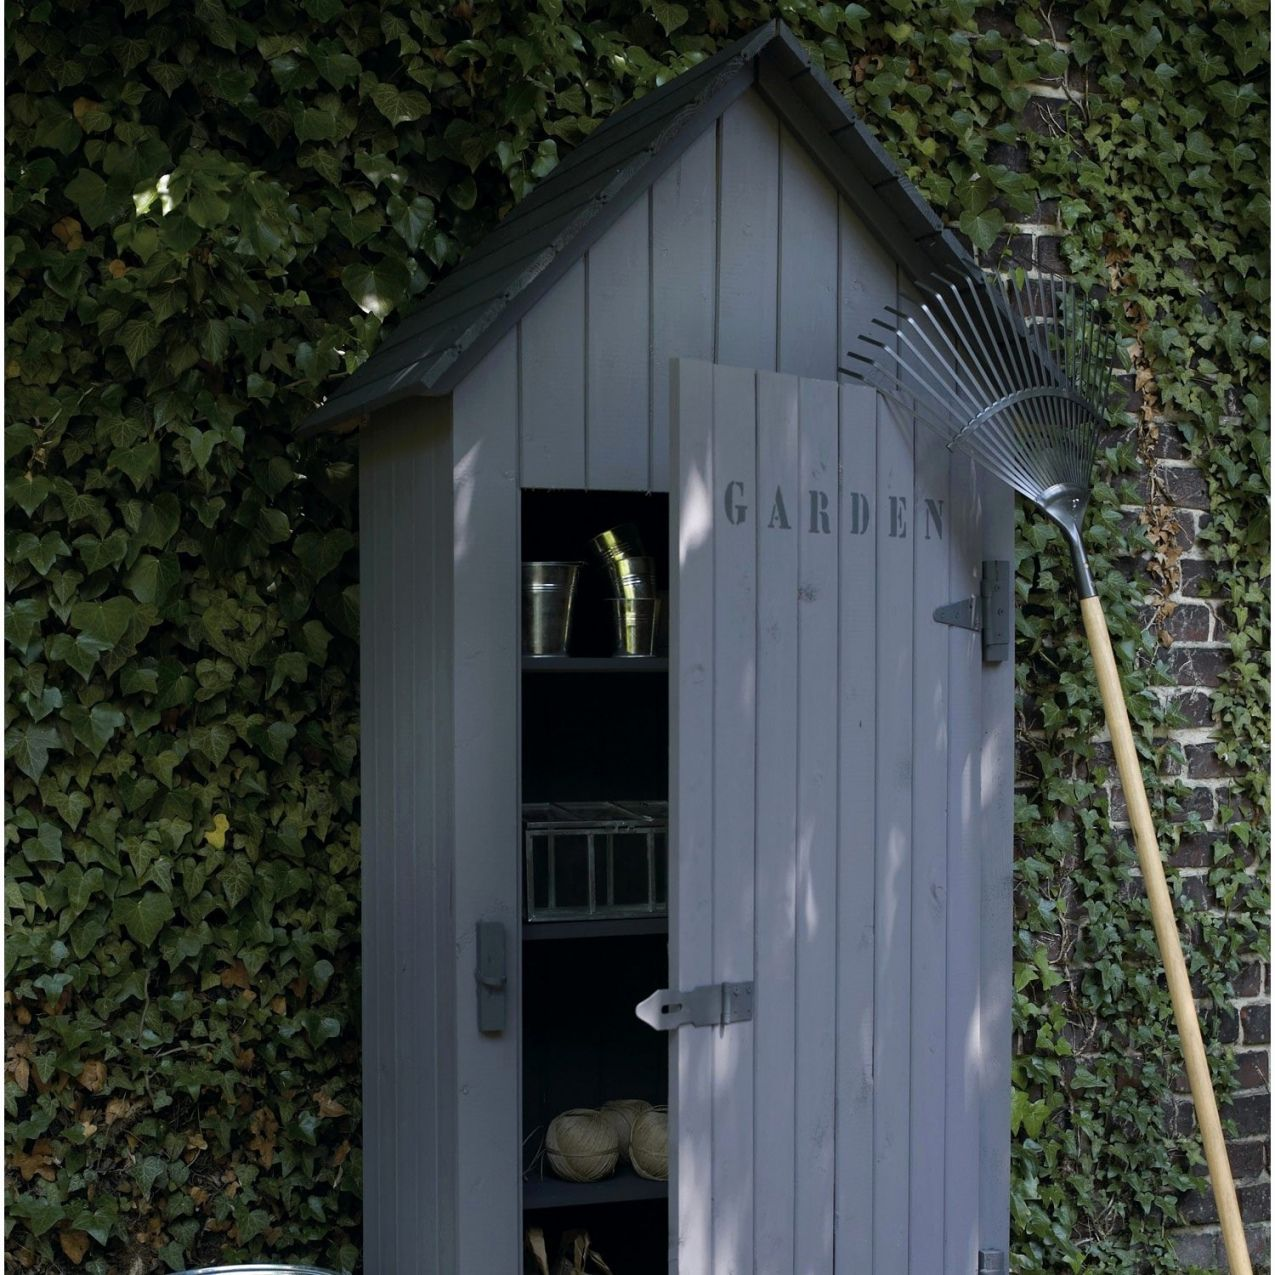 99 Chalet Pvc Leroy Merlin 2020 Small Sheds Shed Outdoor Structures